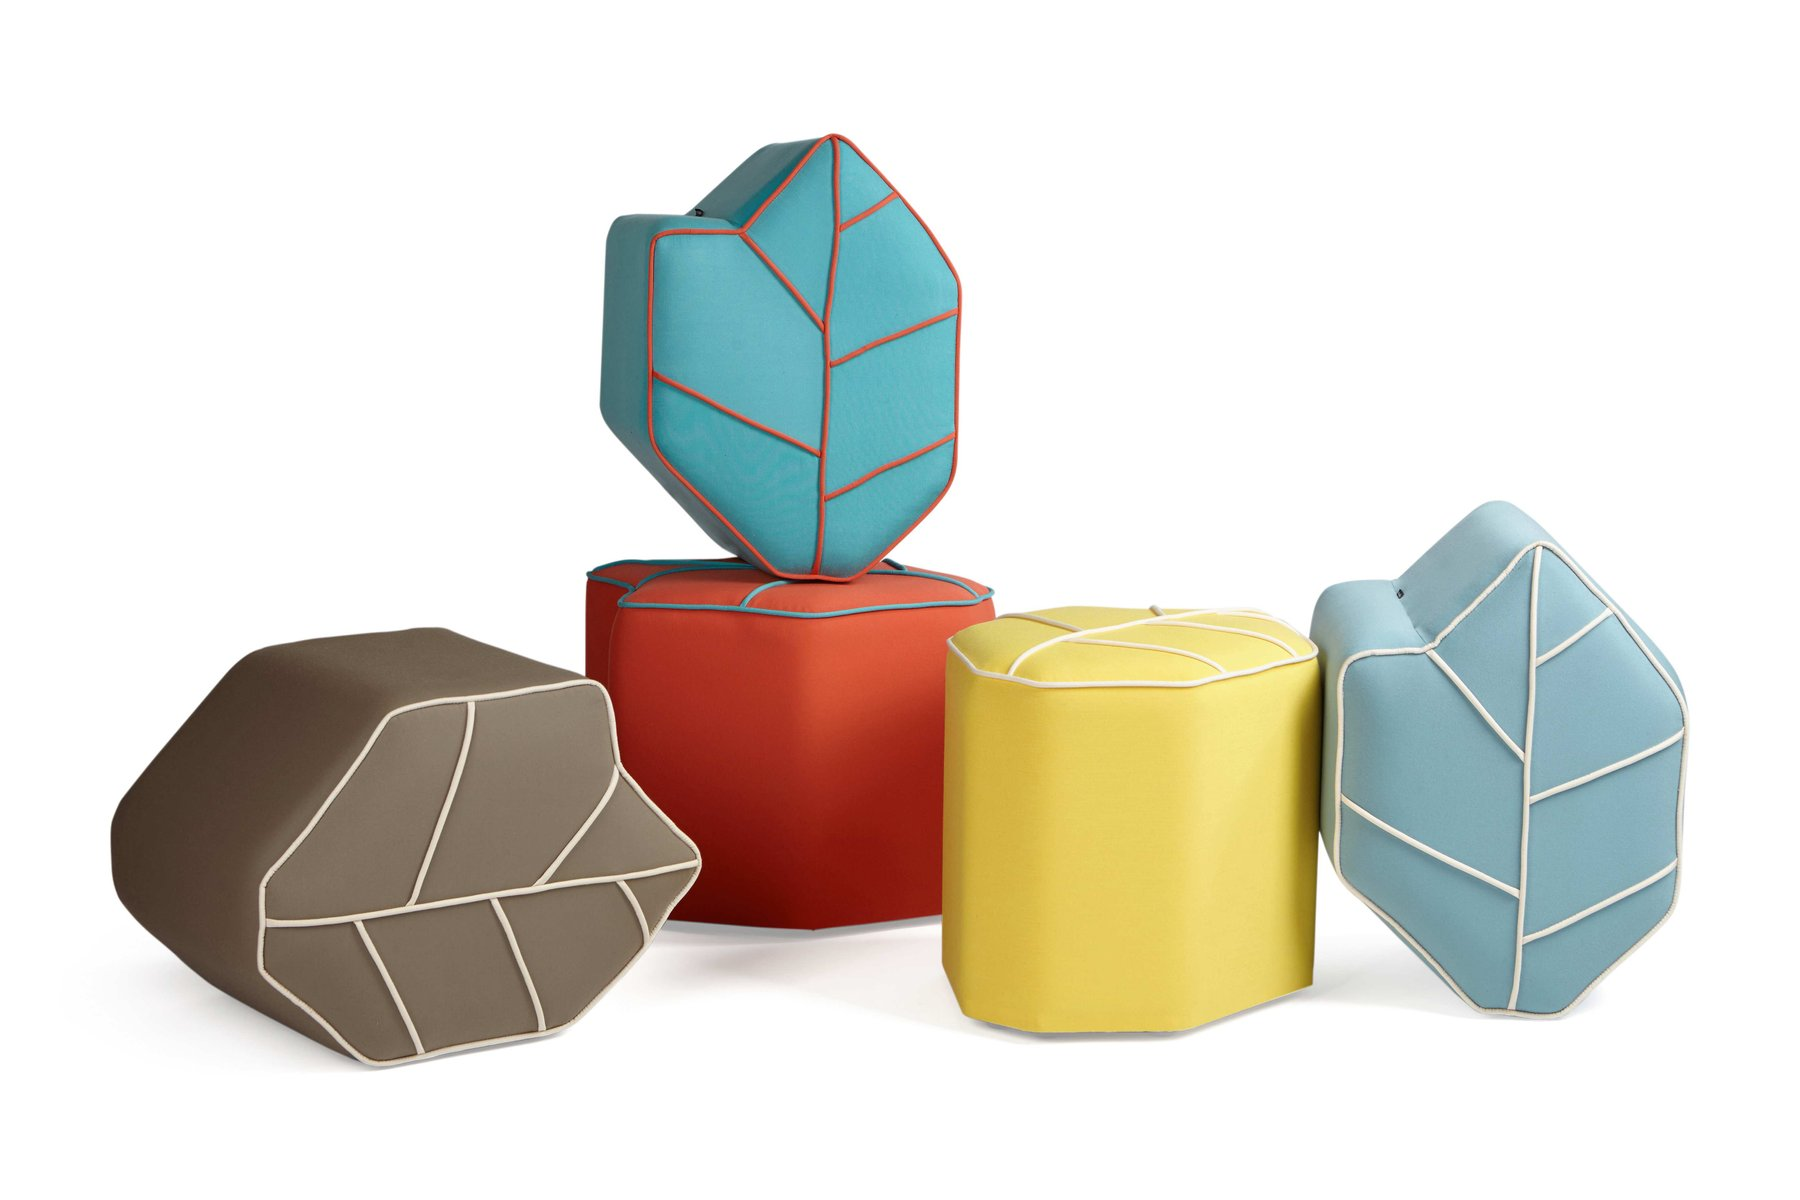 Yellow Outdoor Leaf Seat Pouf By Nicolette De Waart For Design By Nico For Sale At Pamono